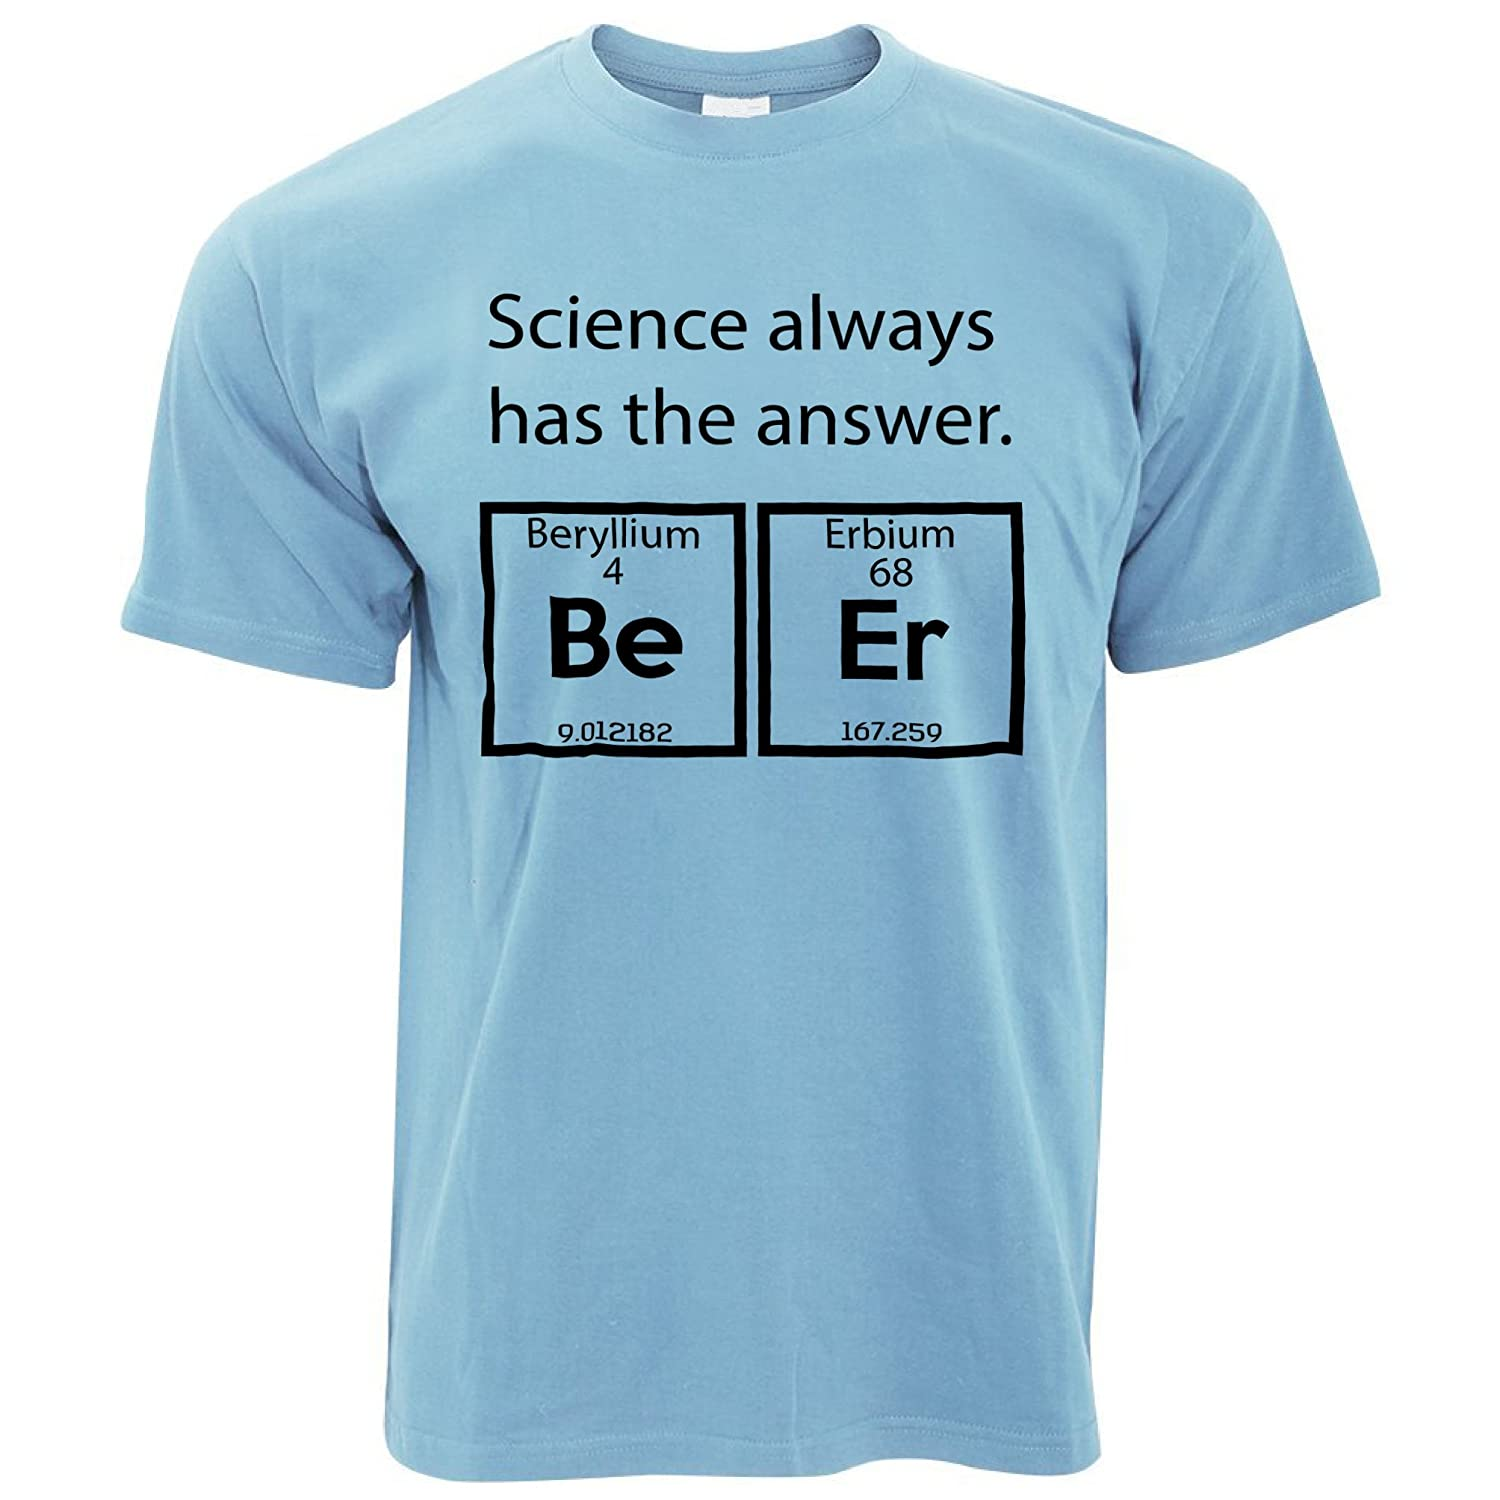 Tim And Ted Beryllium Erbium Beer Printed Design College Party Nerd Geek Science Scientific Chemisty Alcohol Mens T-Shirt Cool Funny Gift Present A-TS-00036x